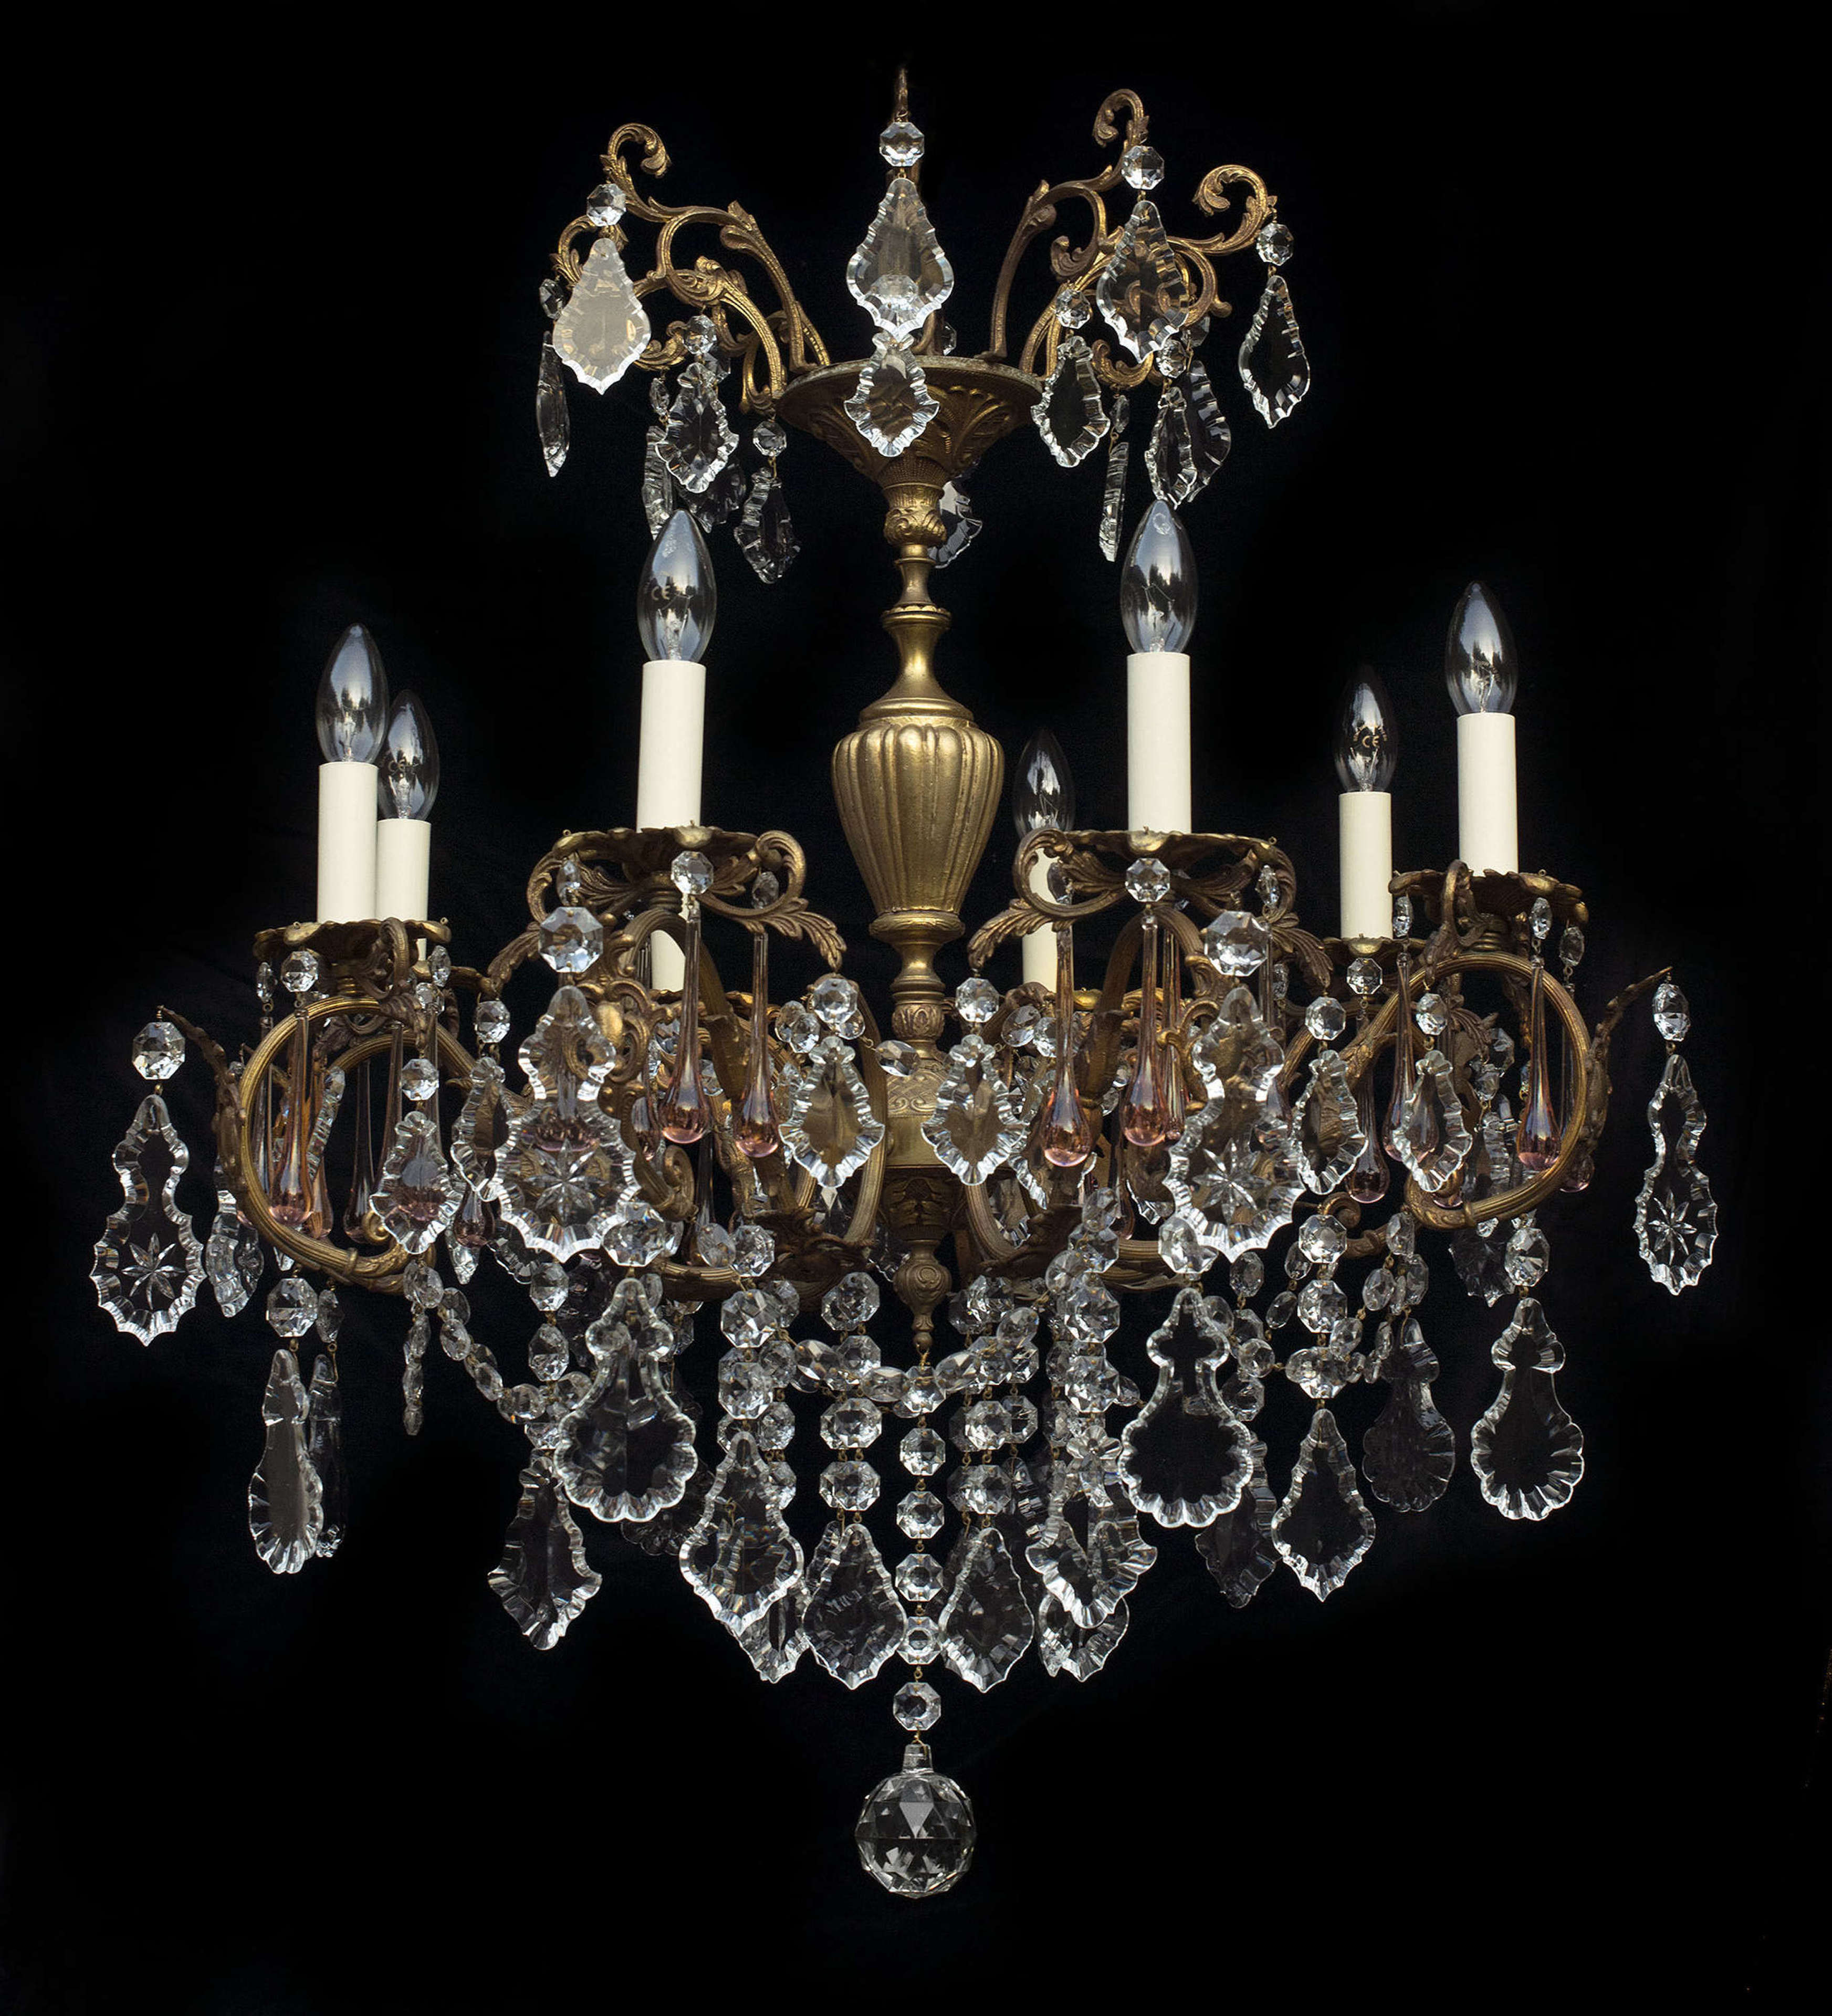 Large 8 light Italian antique chandelier with pale pink teardrops